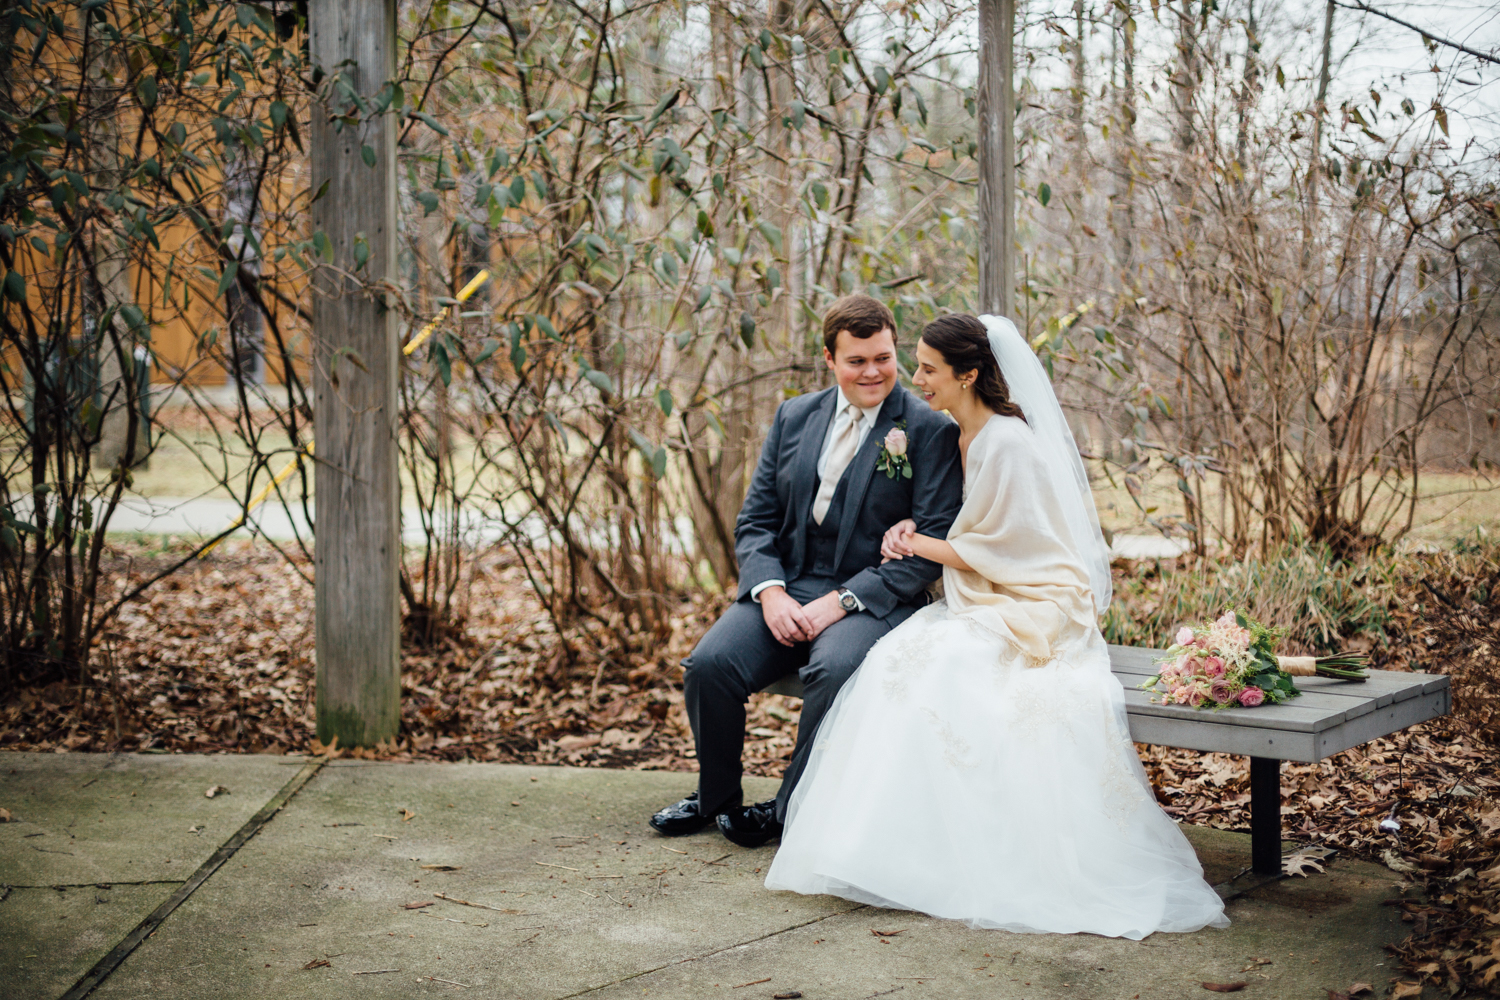 Fun, Intimate Spring Wedding by Corrie Mick Photography-58.jpg